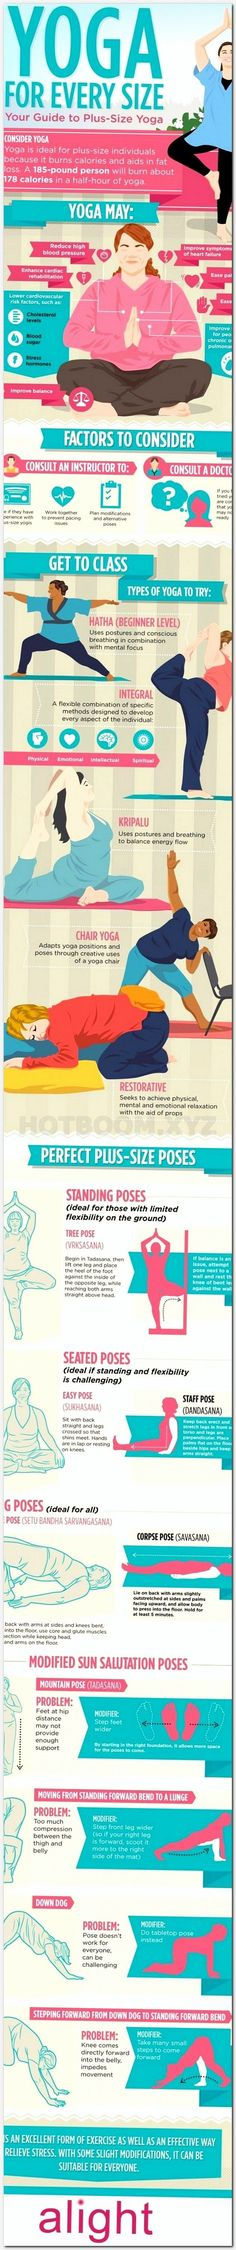 pregnancy yoga houston, bikram yoga class finder, how to lose weight safe and fast, how to lose weight food plan, how to practice yoga daily, healthy food to lose weight, yoga for weight loss for women, how to lose weight at home naturally in a week, spir #pregnancyat8weeks,